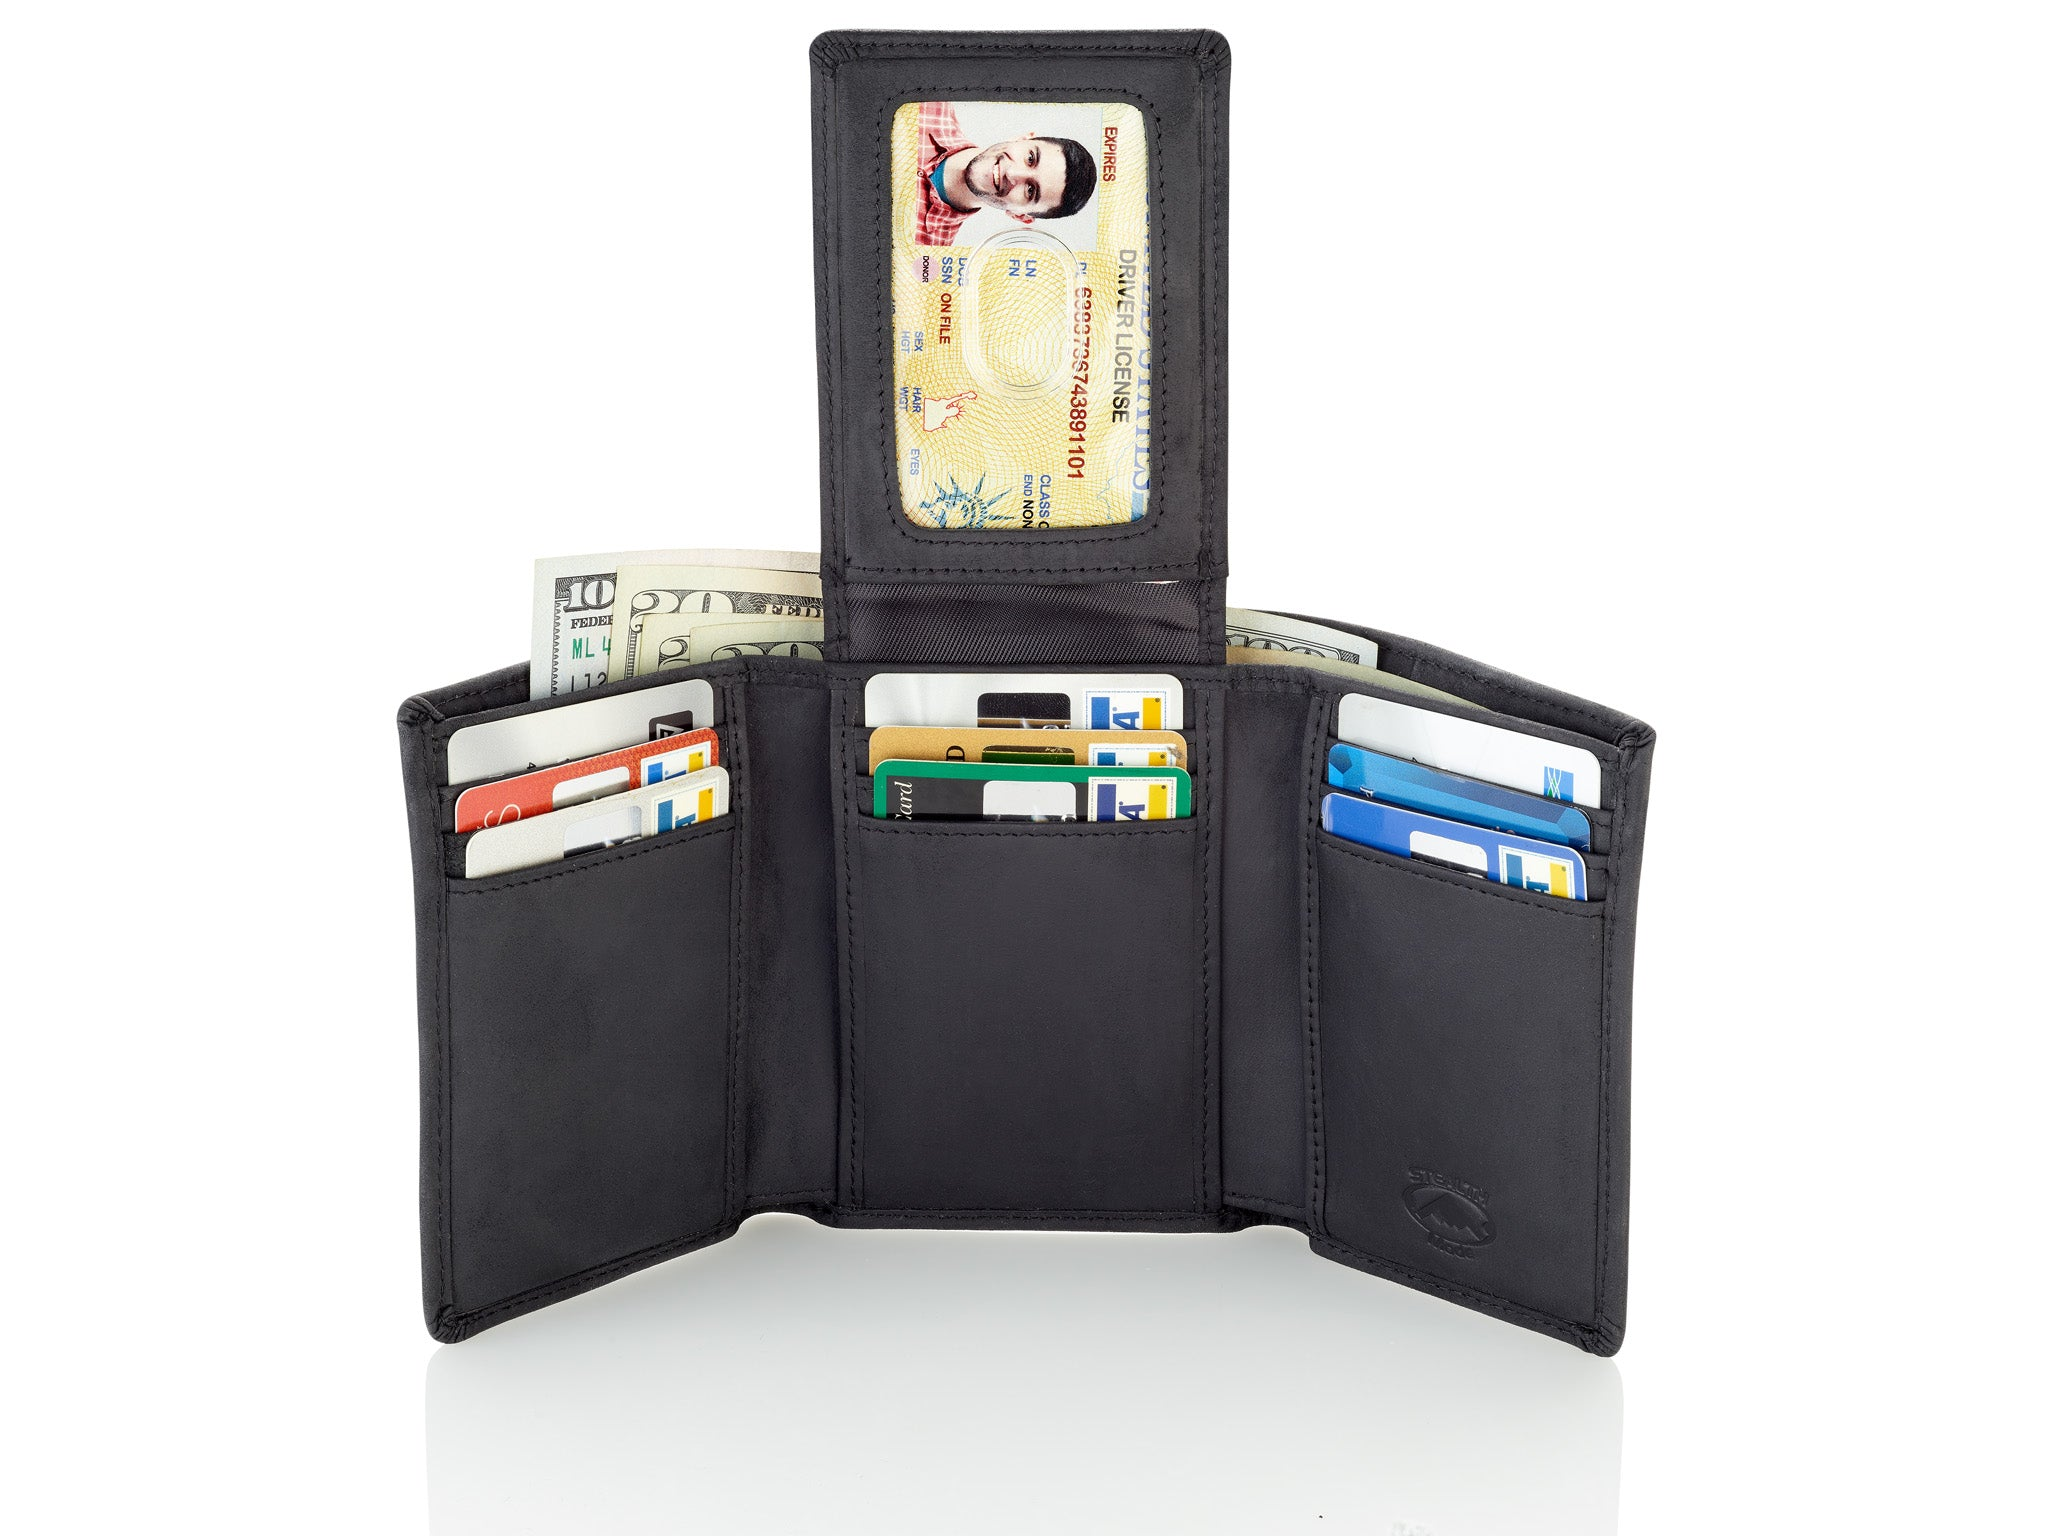 Trifold Leather Wallet for Men with ID Holder and RFID Blocking (Black)